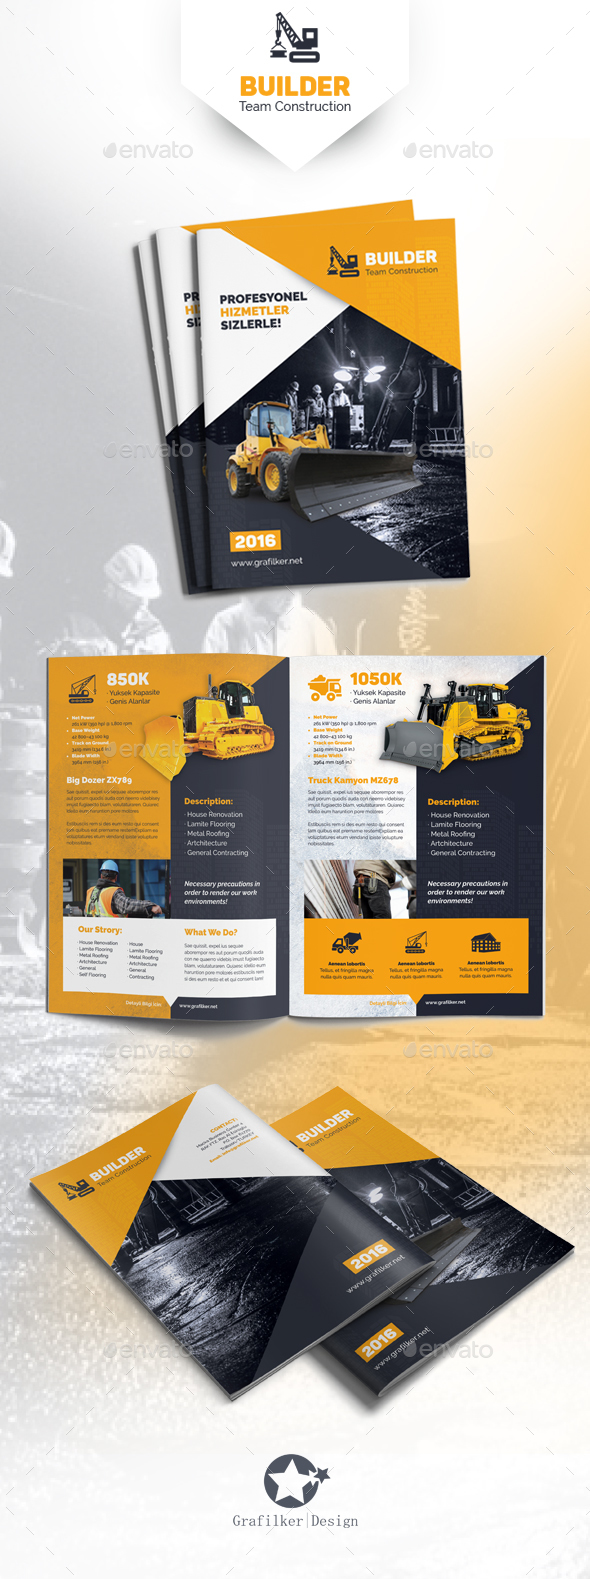 Construction Brochure Templates By Grafilker GraphicRiver - Construction brochure templates